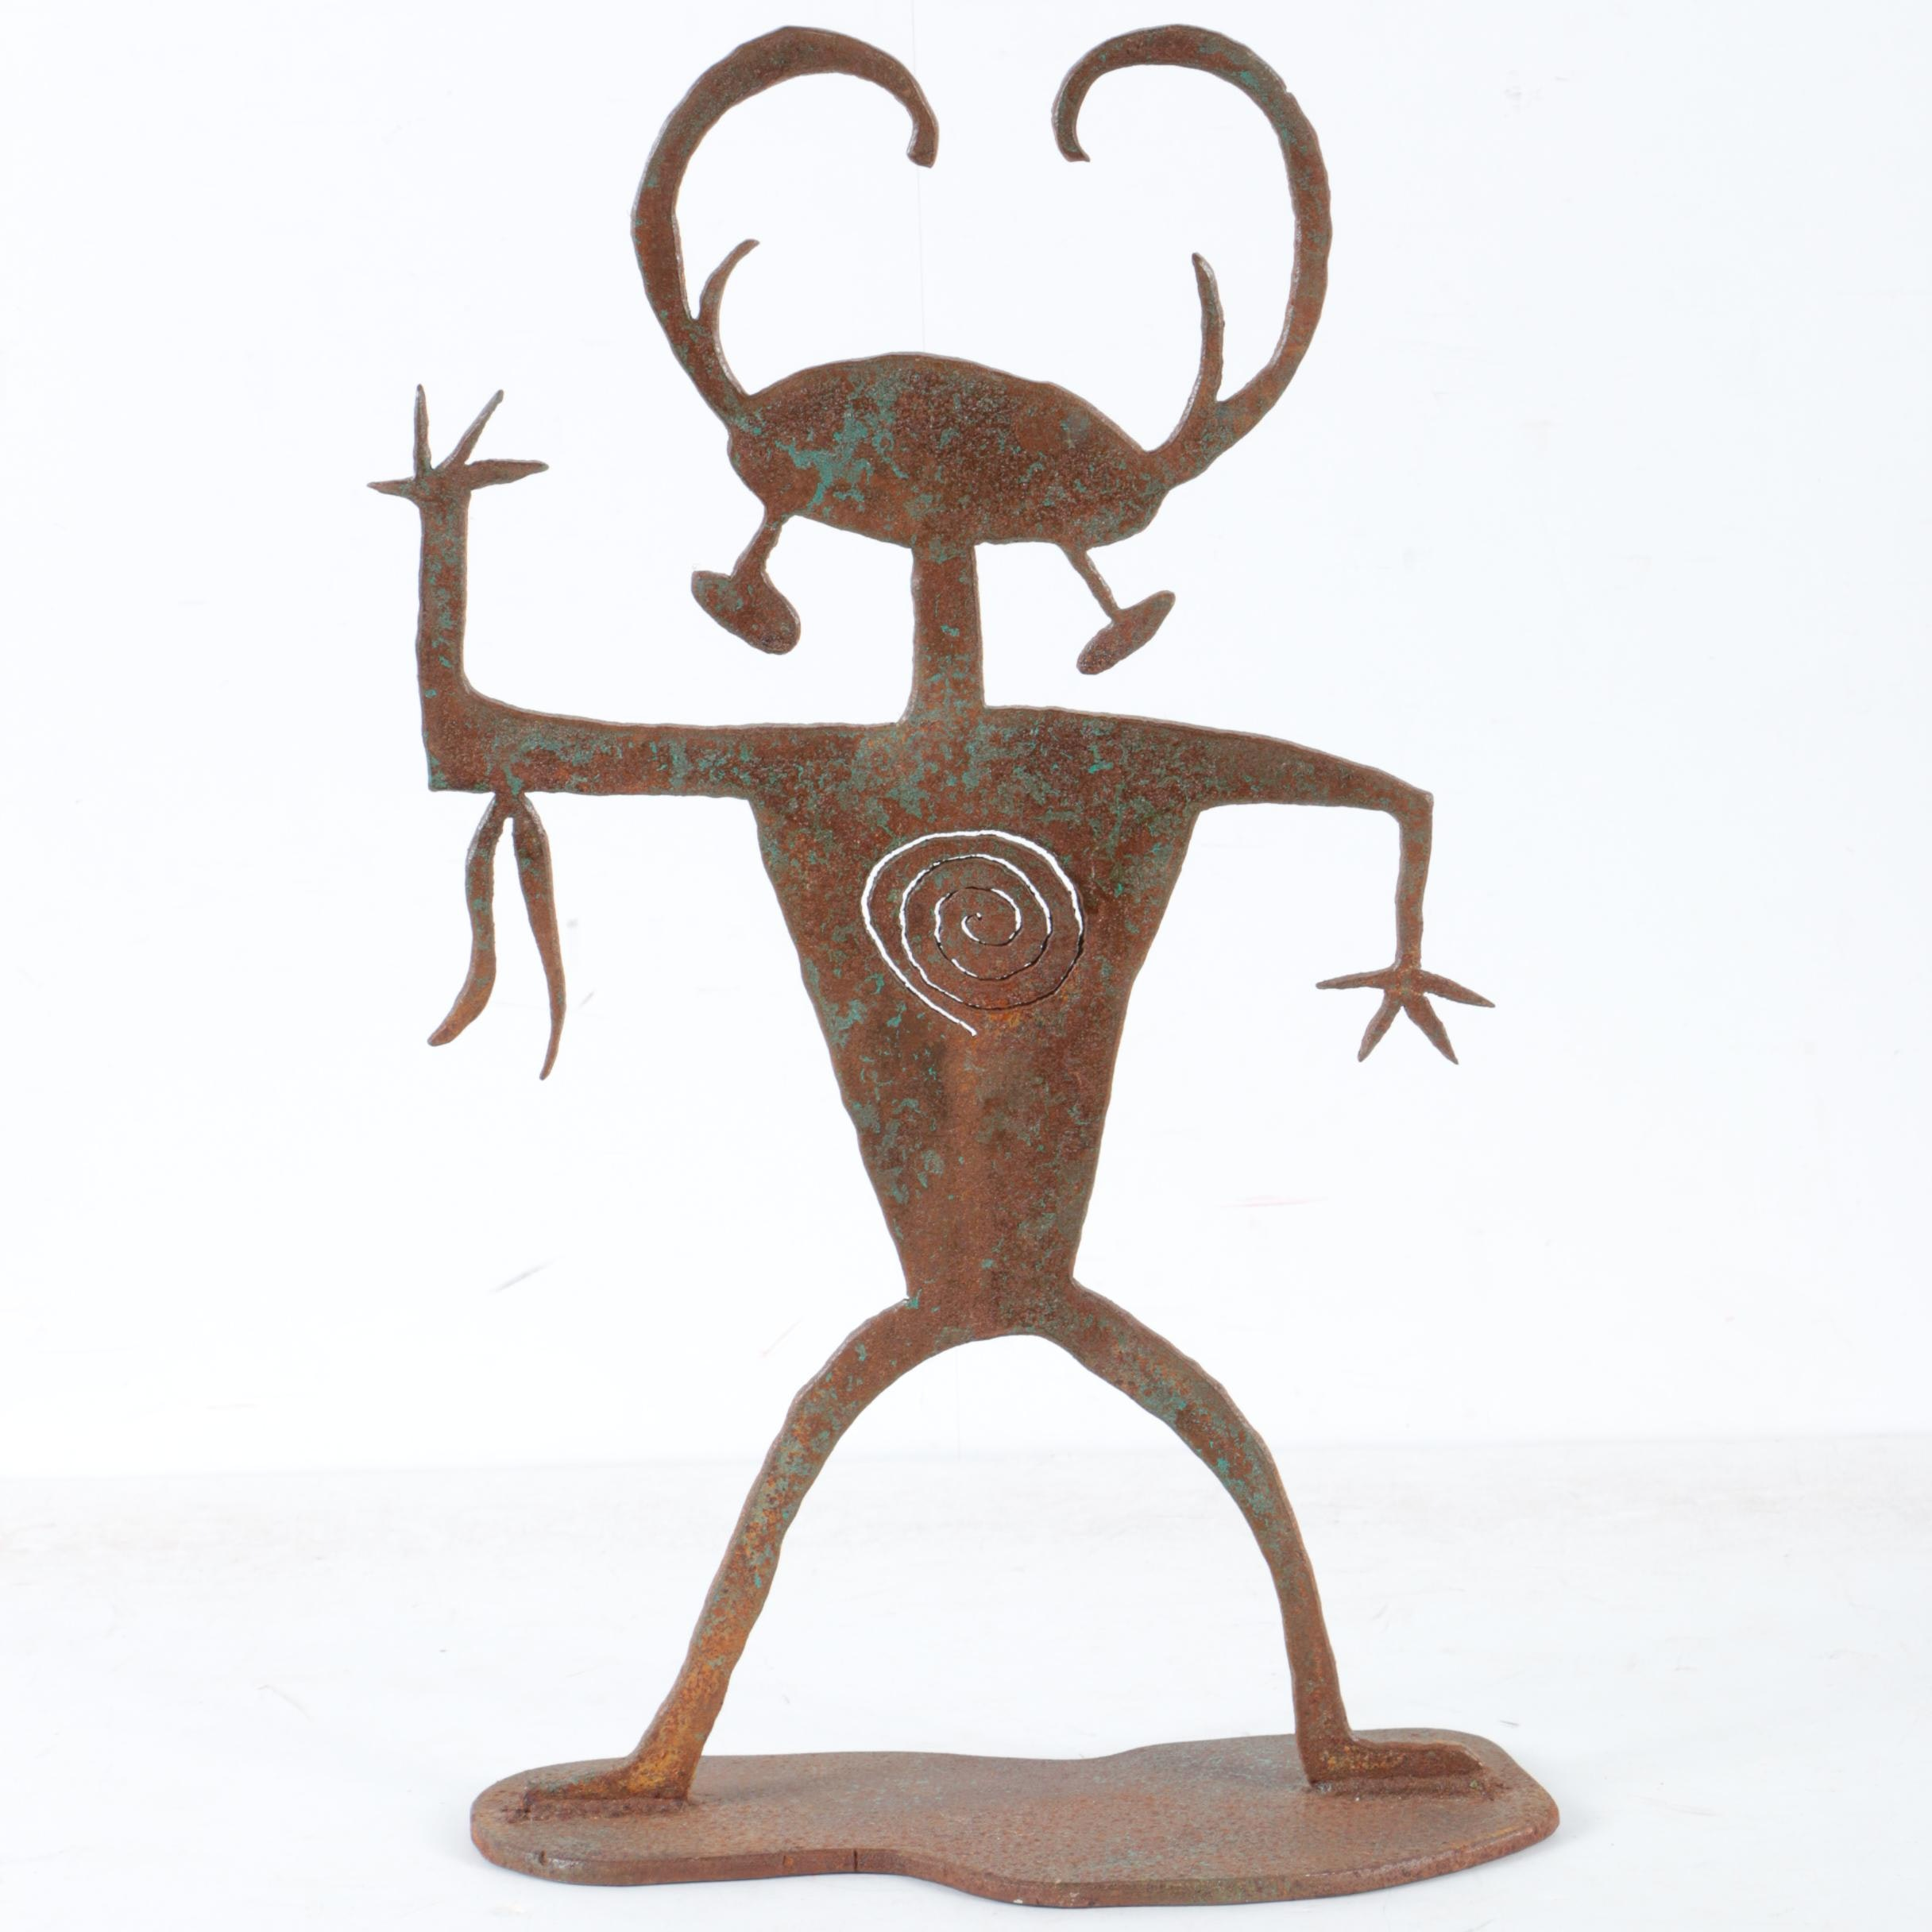 Iron Garden Sculpture Of Dancing Figure